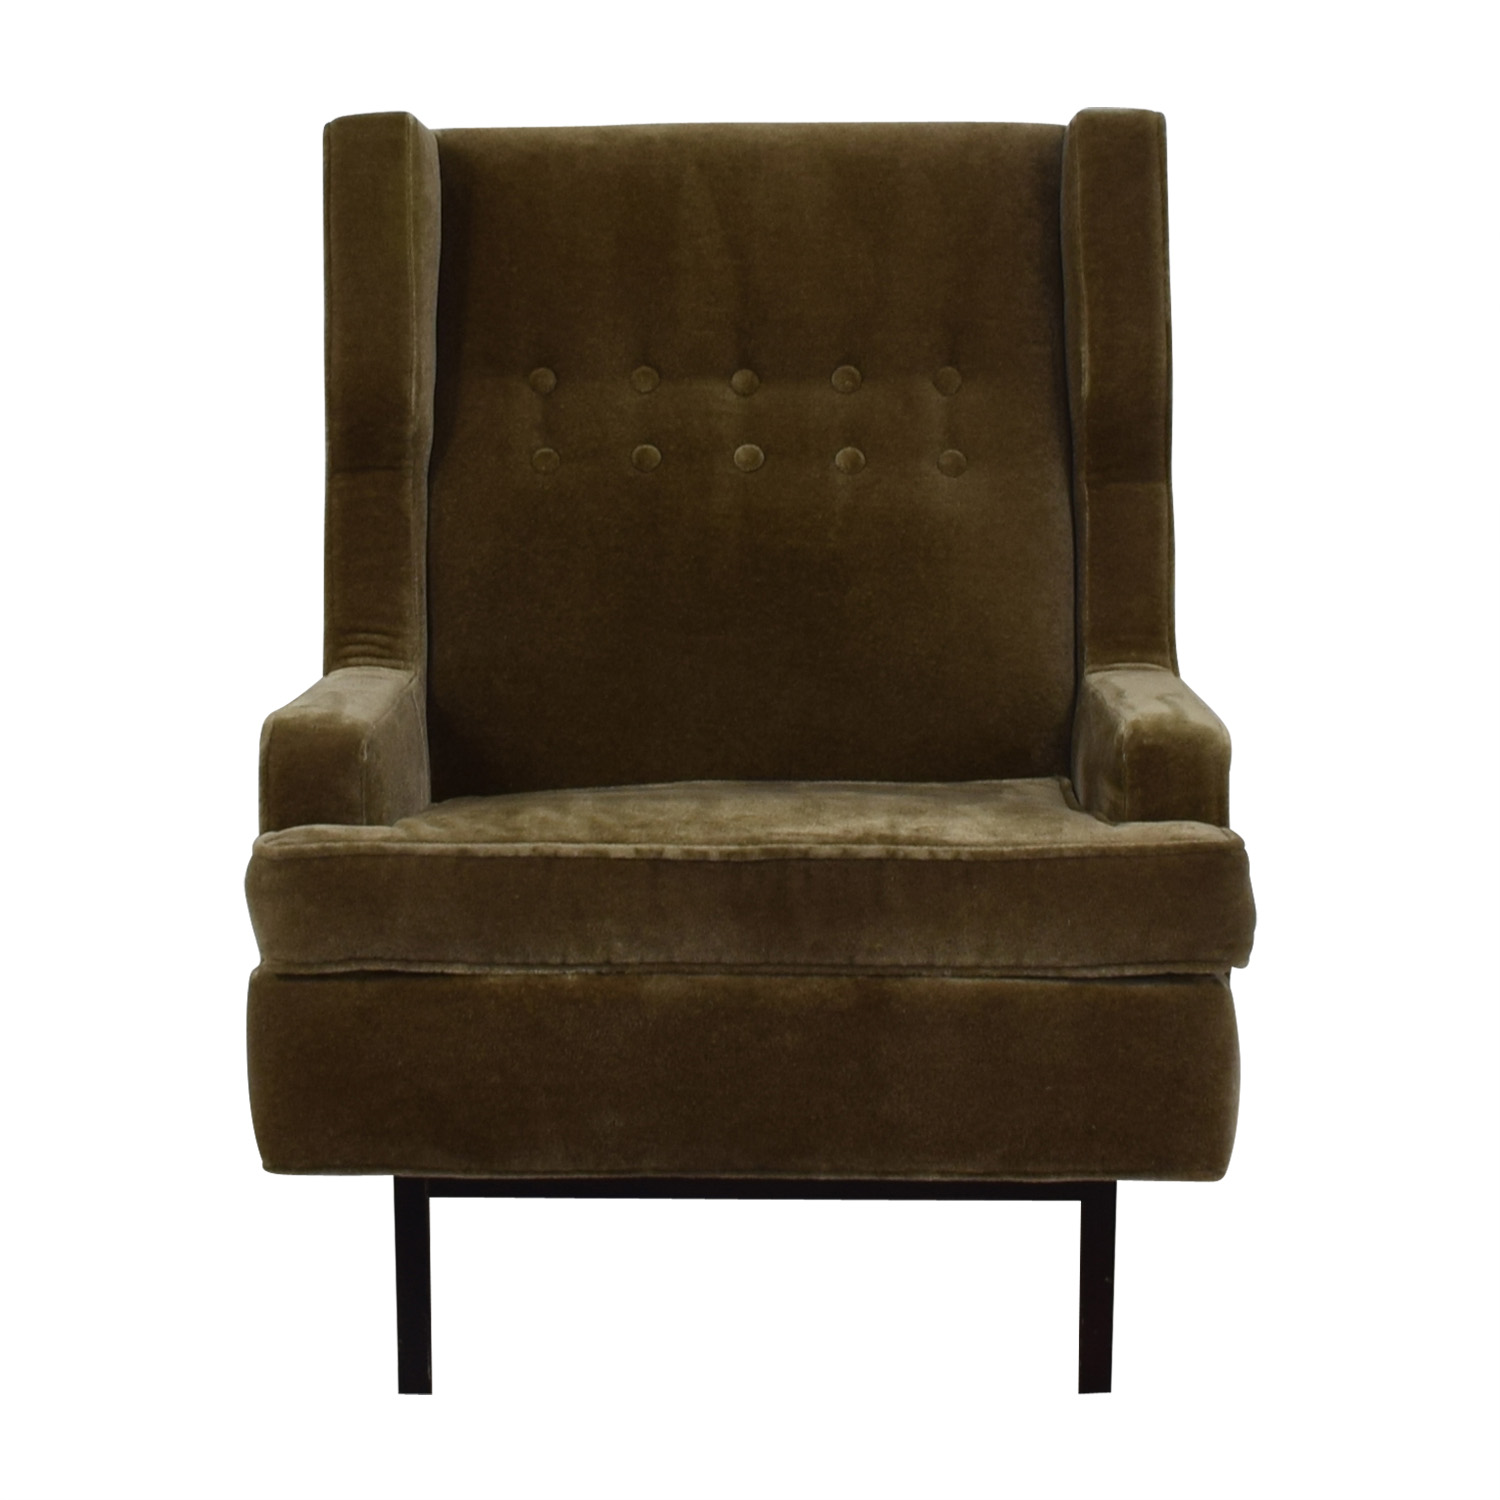 Jonathan Adler Jonathan Adler Mohair Chair Accent Chairs